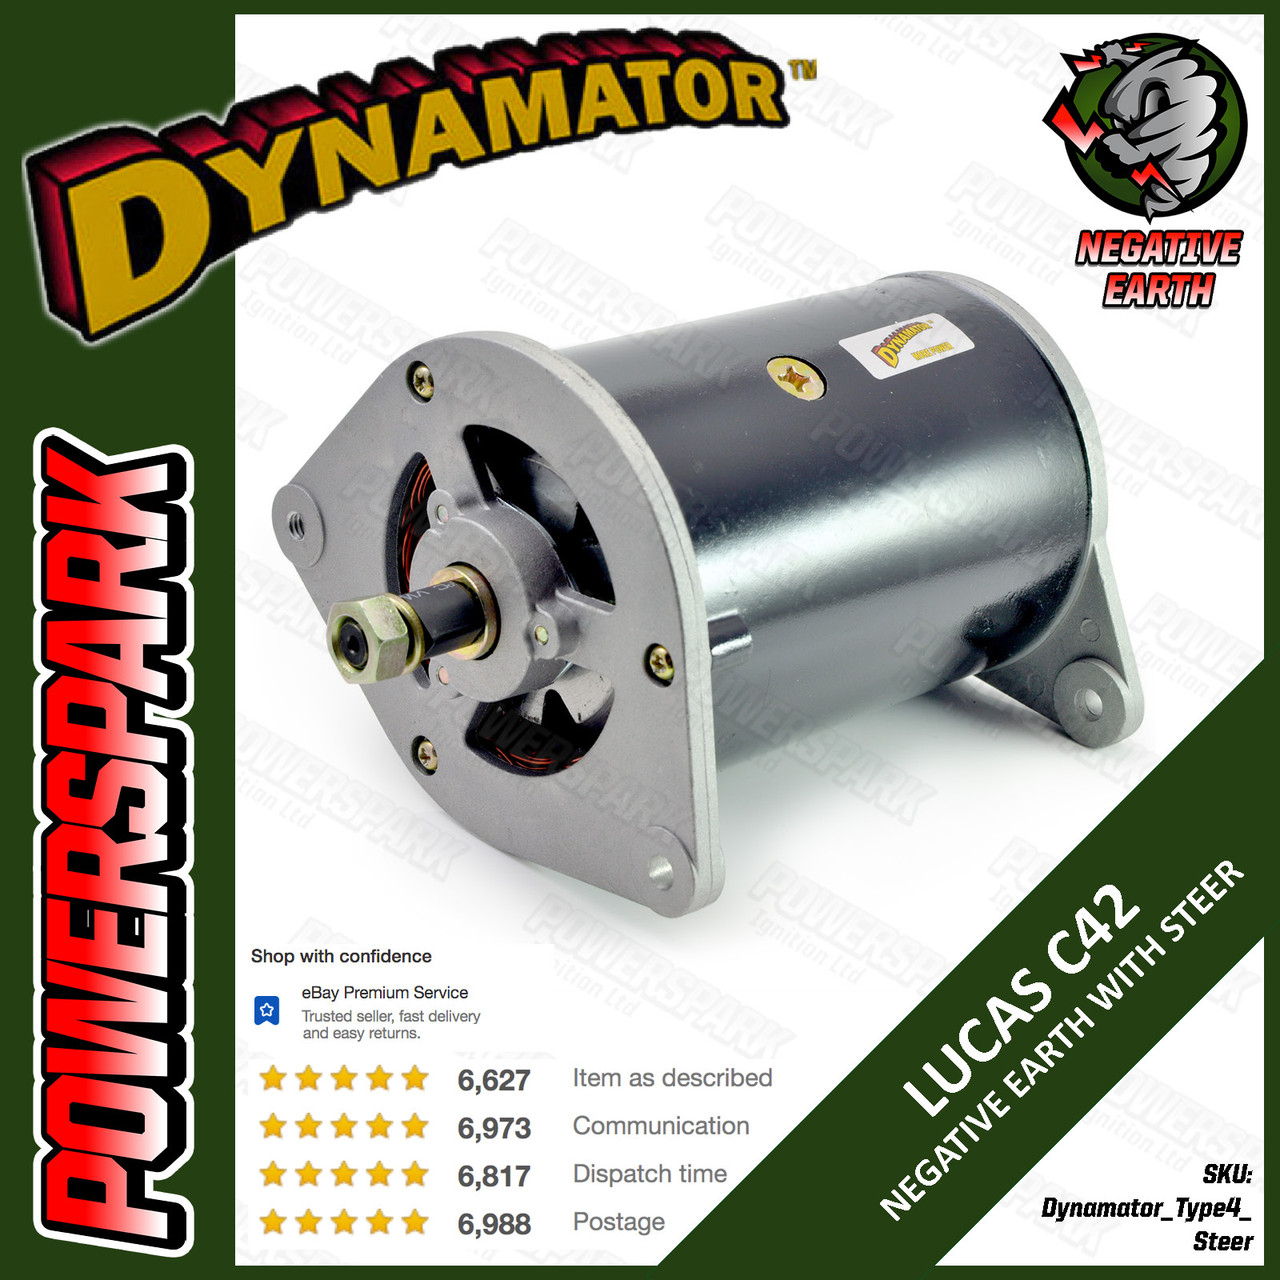 Stealth Dynamator - Dynamo to Alternator Conversion replaces Lucas C42 Dynamo - Neg Earth with Power Steering